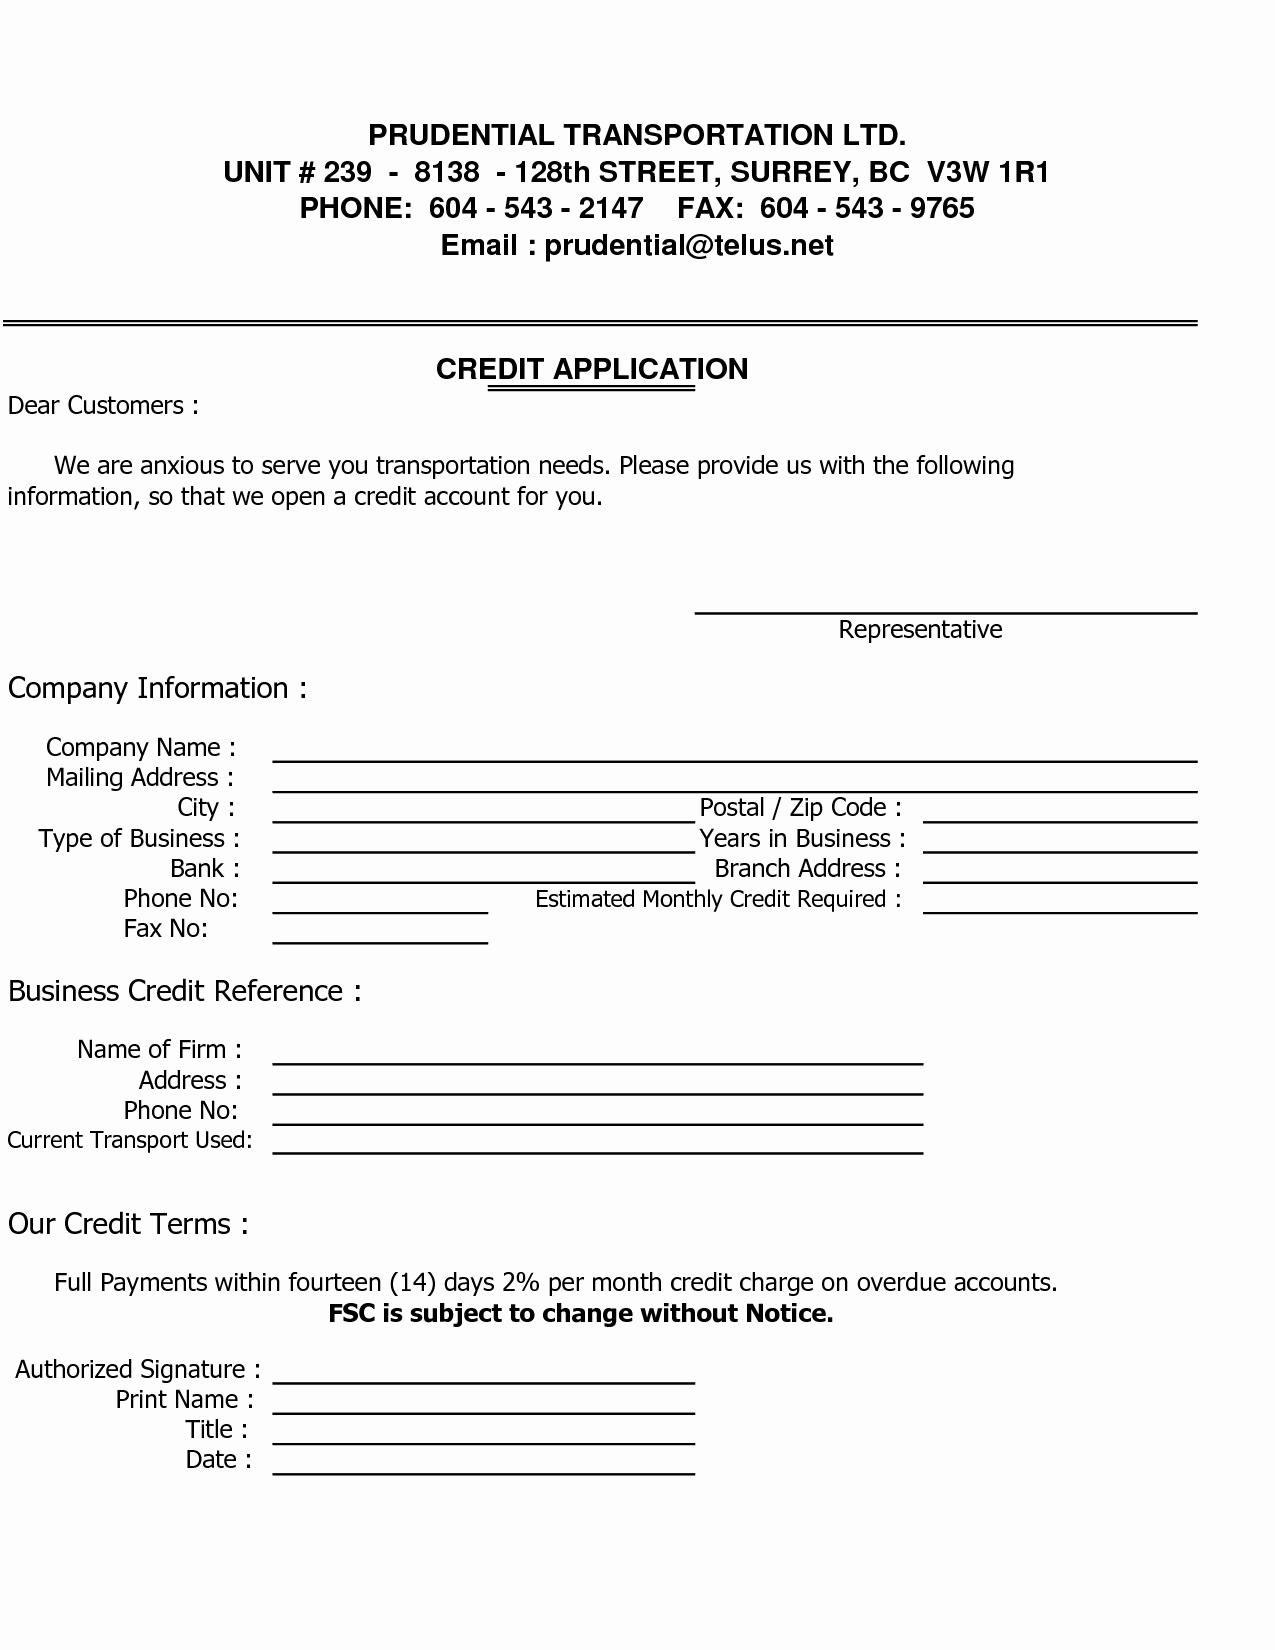 Commercial Credit Application Template Inspirational Sample Credit Reference Letter Template Images Business